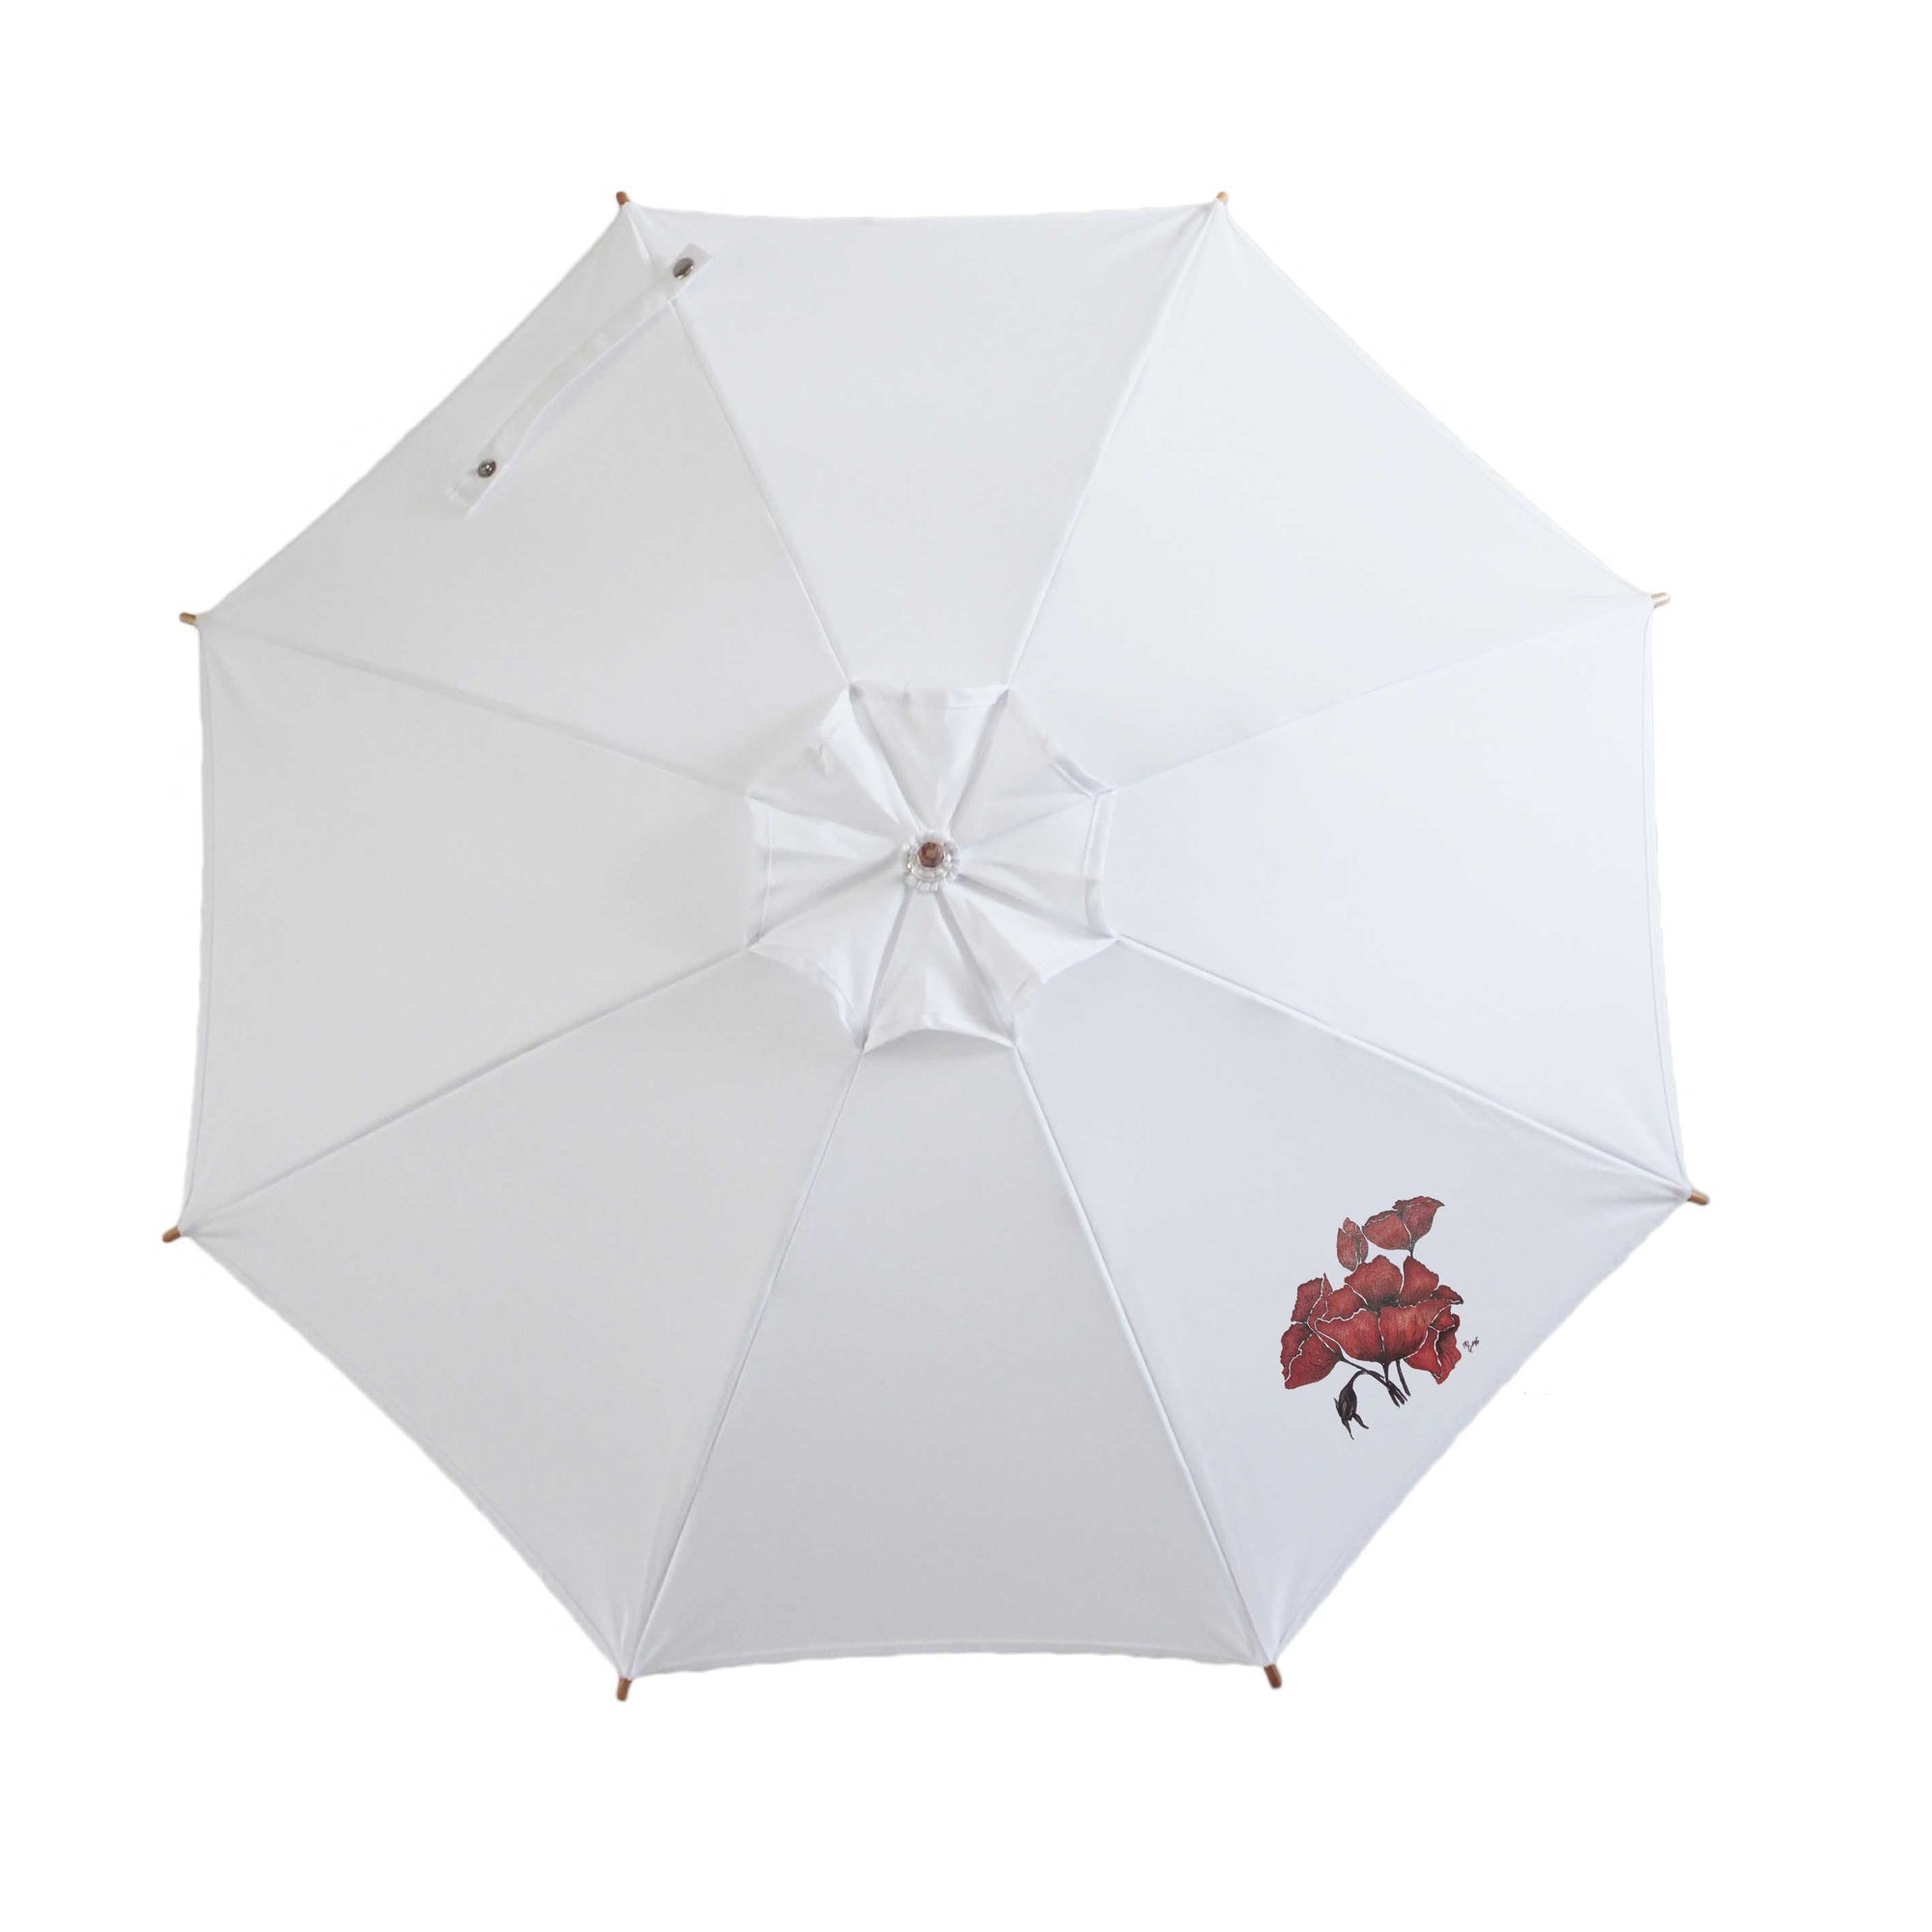 Compact Cosmopolitan Sun Umbrella, Poppy Limited Edition.